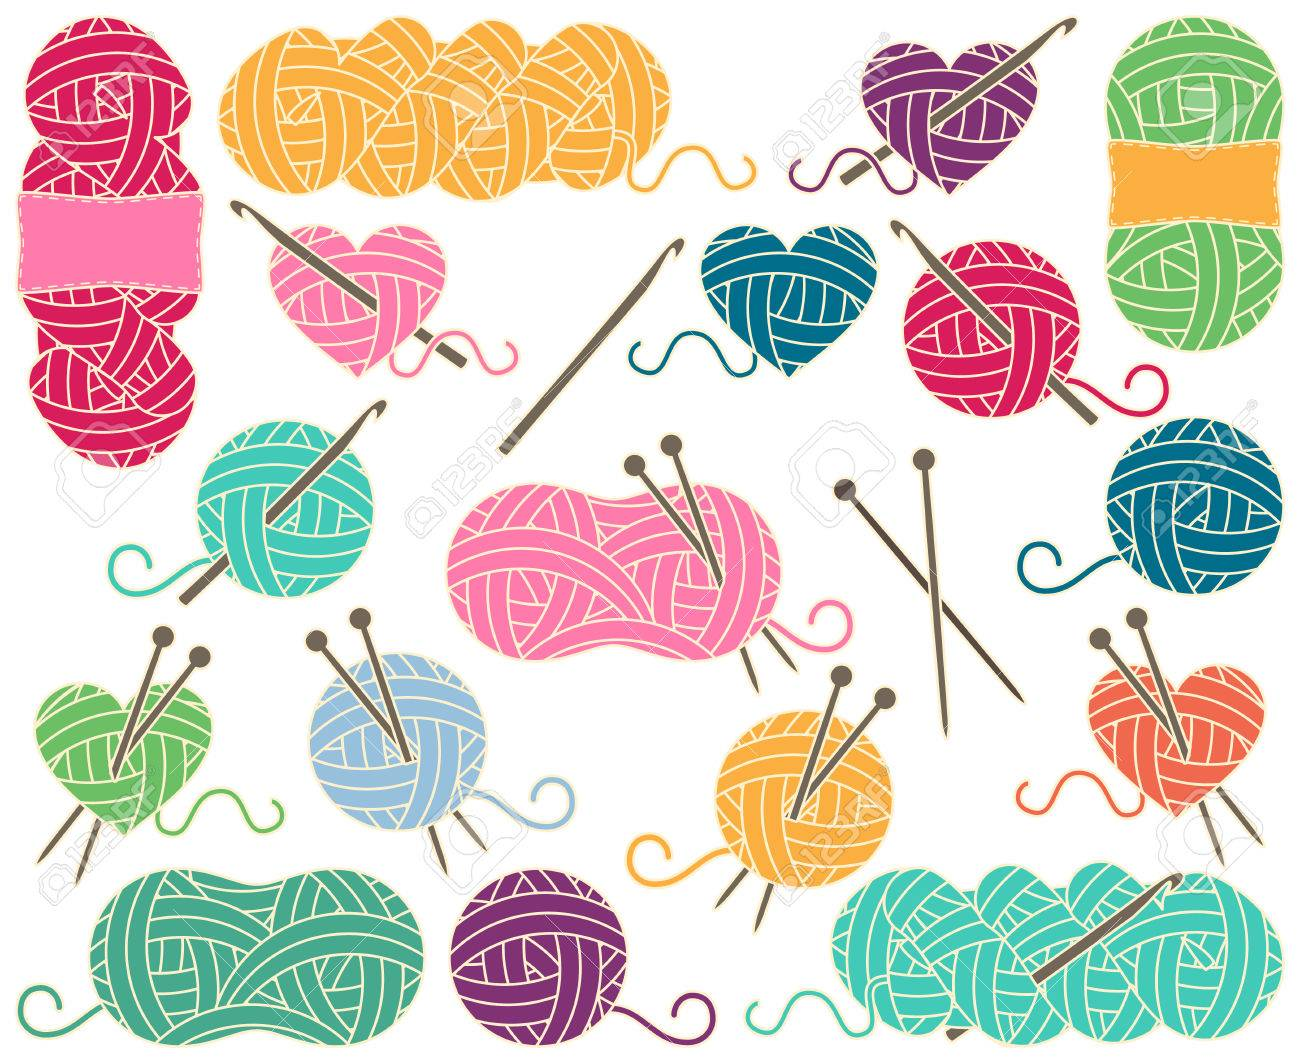 Cute Collection of Balls of Yarn, Skeins of Yarn or Thread for Knitting and Crochet - 63106639